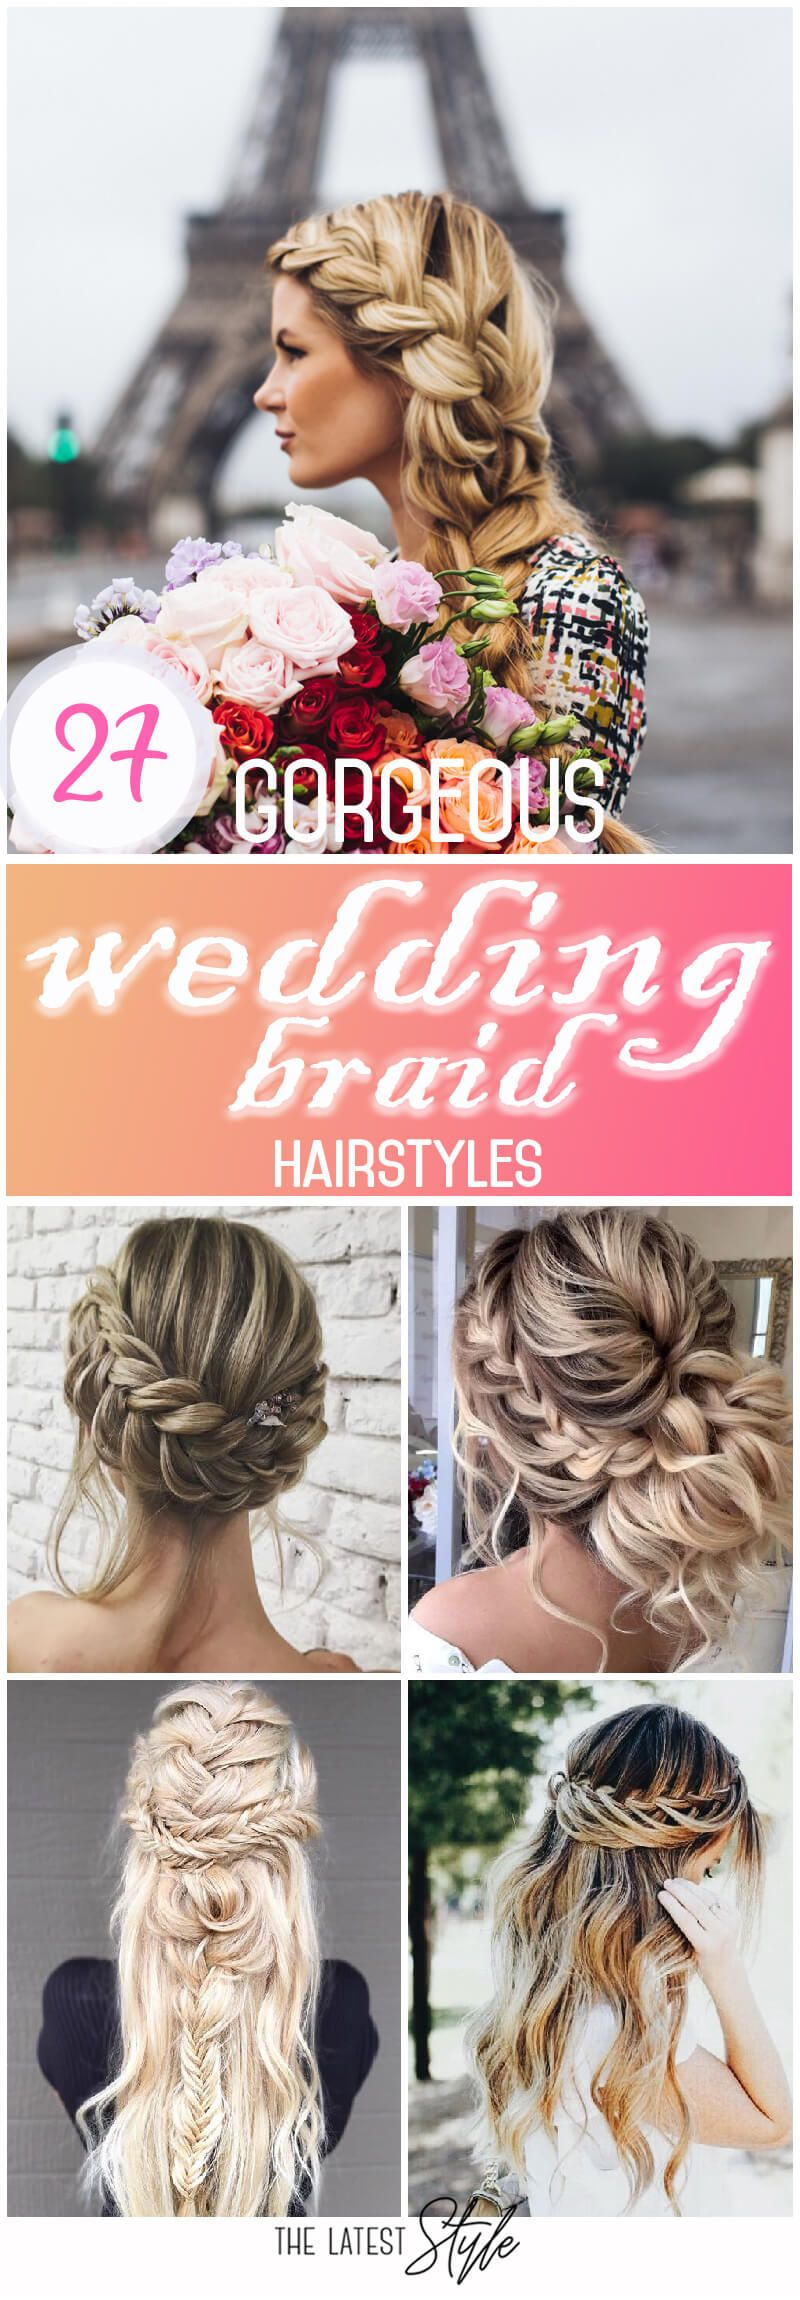 Deciding how to style your hair for your wedding can be as exciting